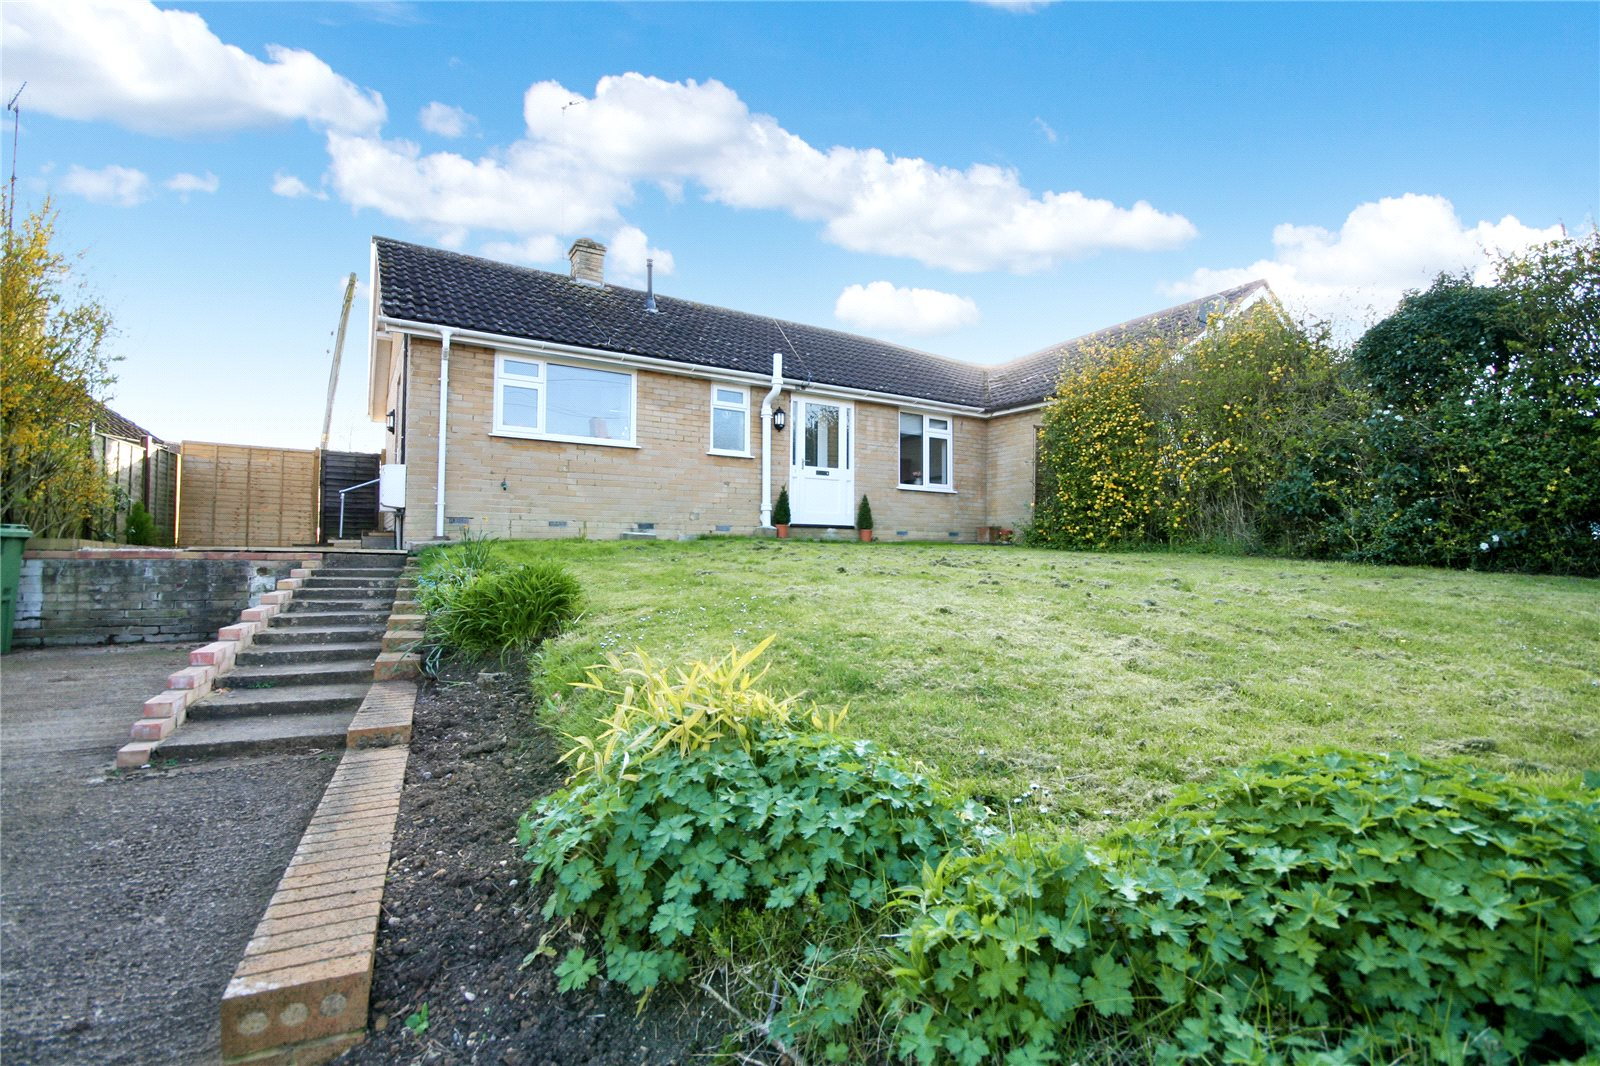 2 Bedrooms Bungalow for sale in Harveys Lane Winchcombe Cheltenham GL54